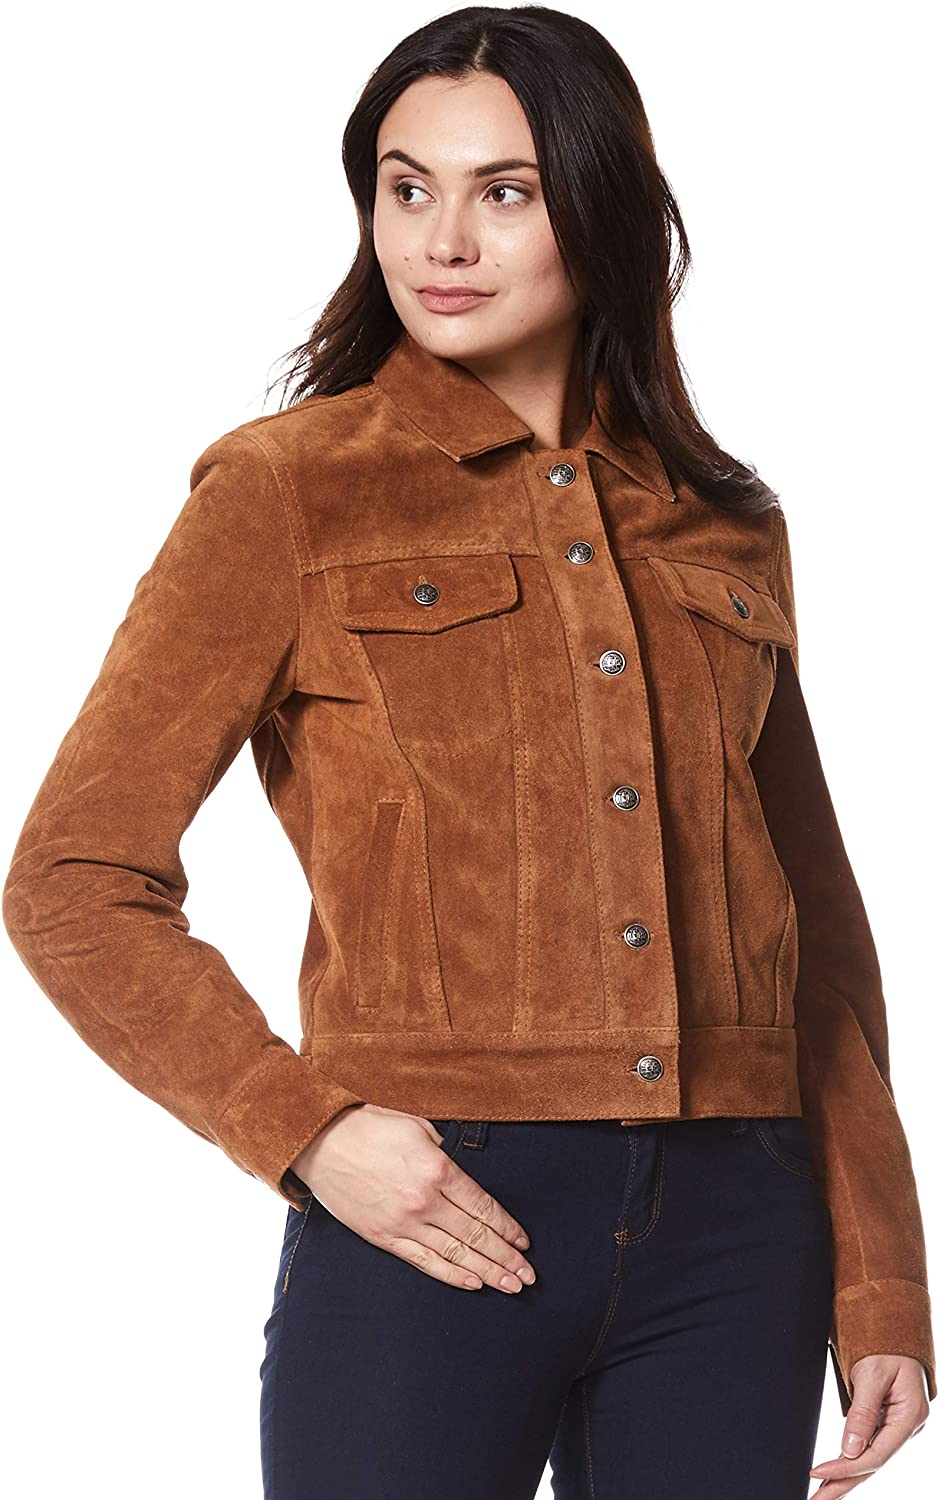 Carrie CH Hoxton Women Trucker Real Leather Jacket Tan Suede Casual Fashion Shirt Jacket 1680